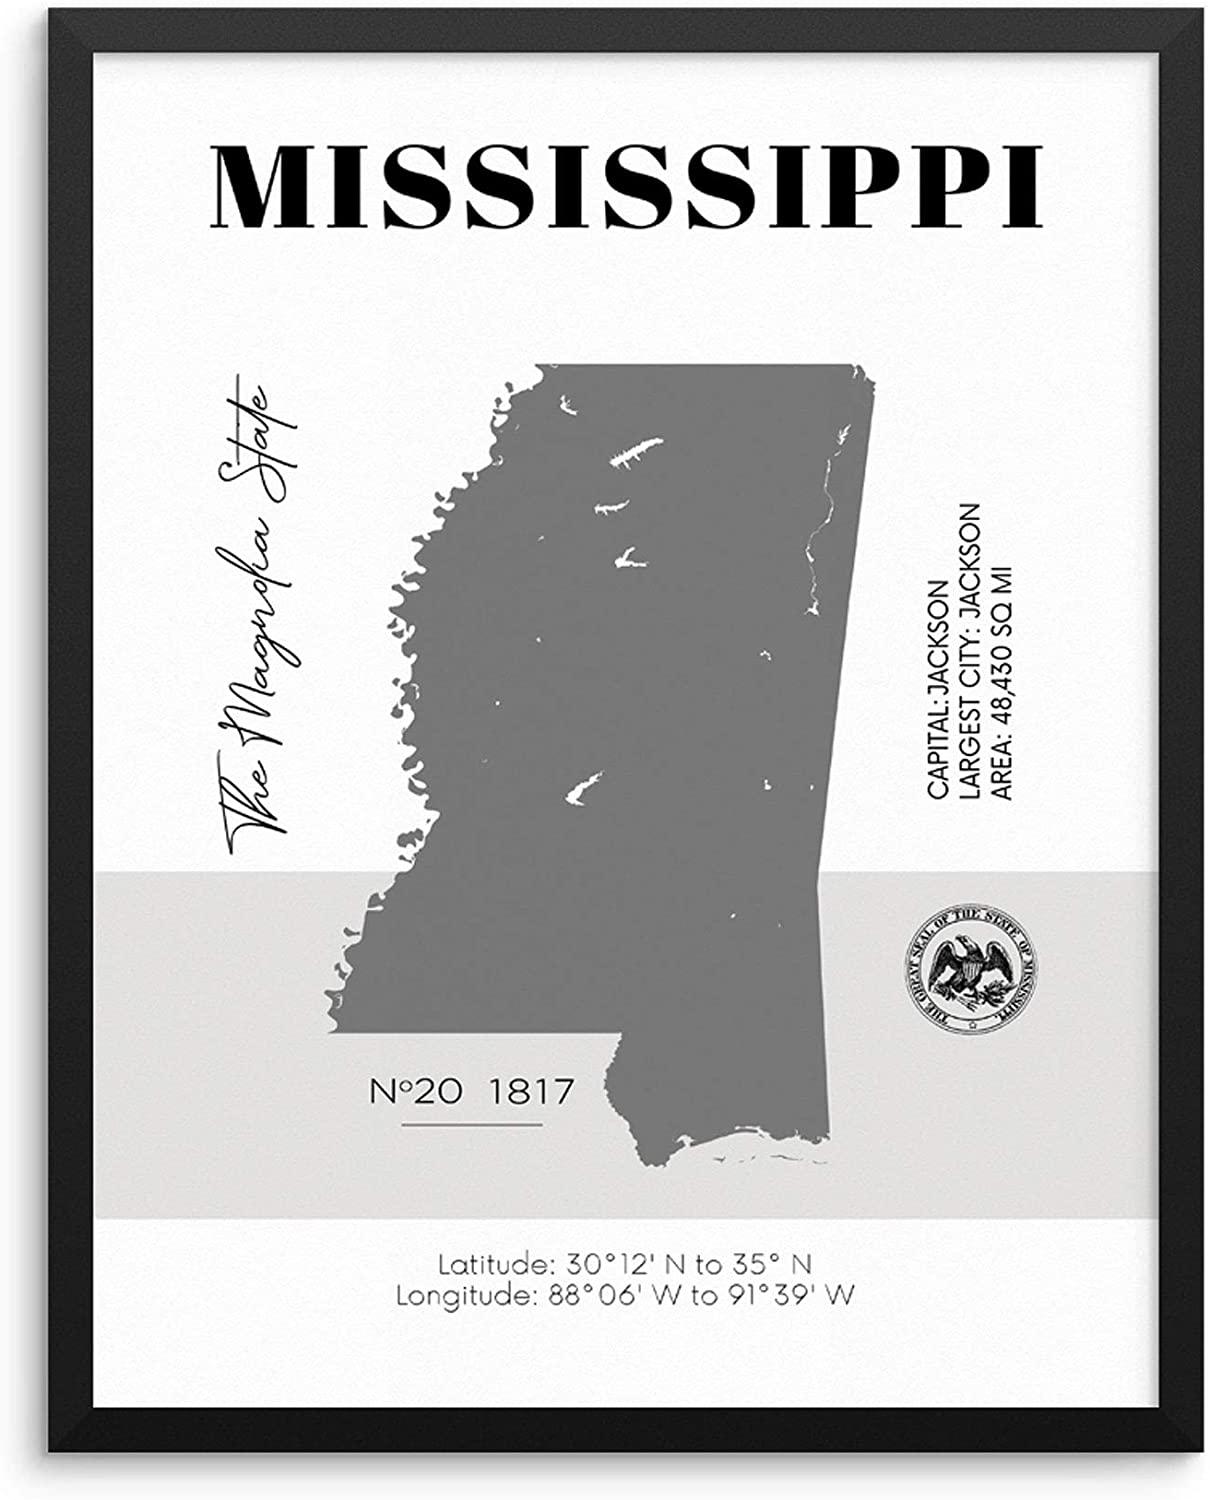 Mississippi State Map Poster With Demographics Minimalist Home Decor Travel  Art Print 20x20 UNFRAMED Trendy Artwork for Bedroom Living Room Entryway ...